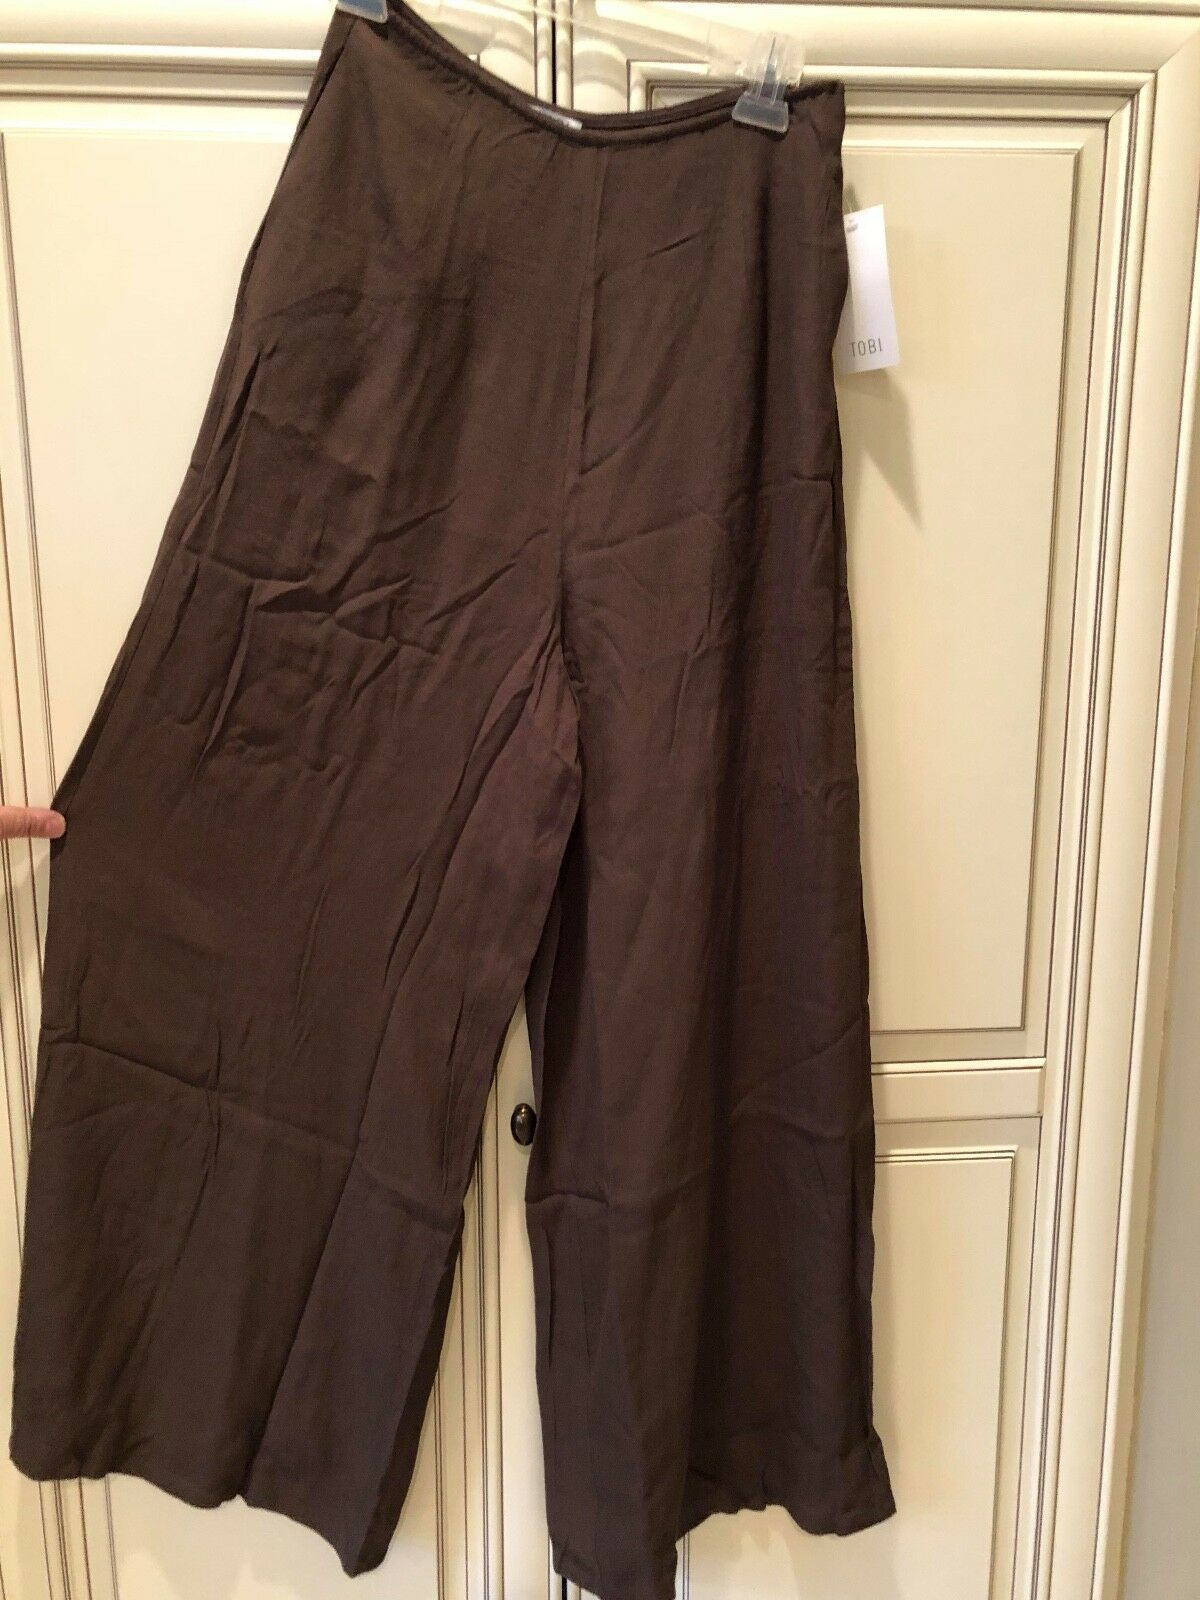 BRAND NEW WITH TAGS BY TOBI WOMEN'S  LA PLAYA HIGH WAISTED OLIVE PANTS SIZE S